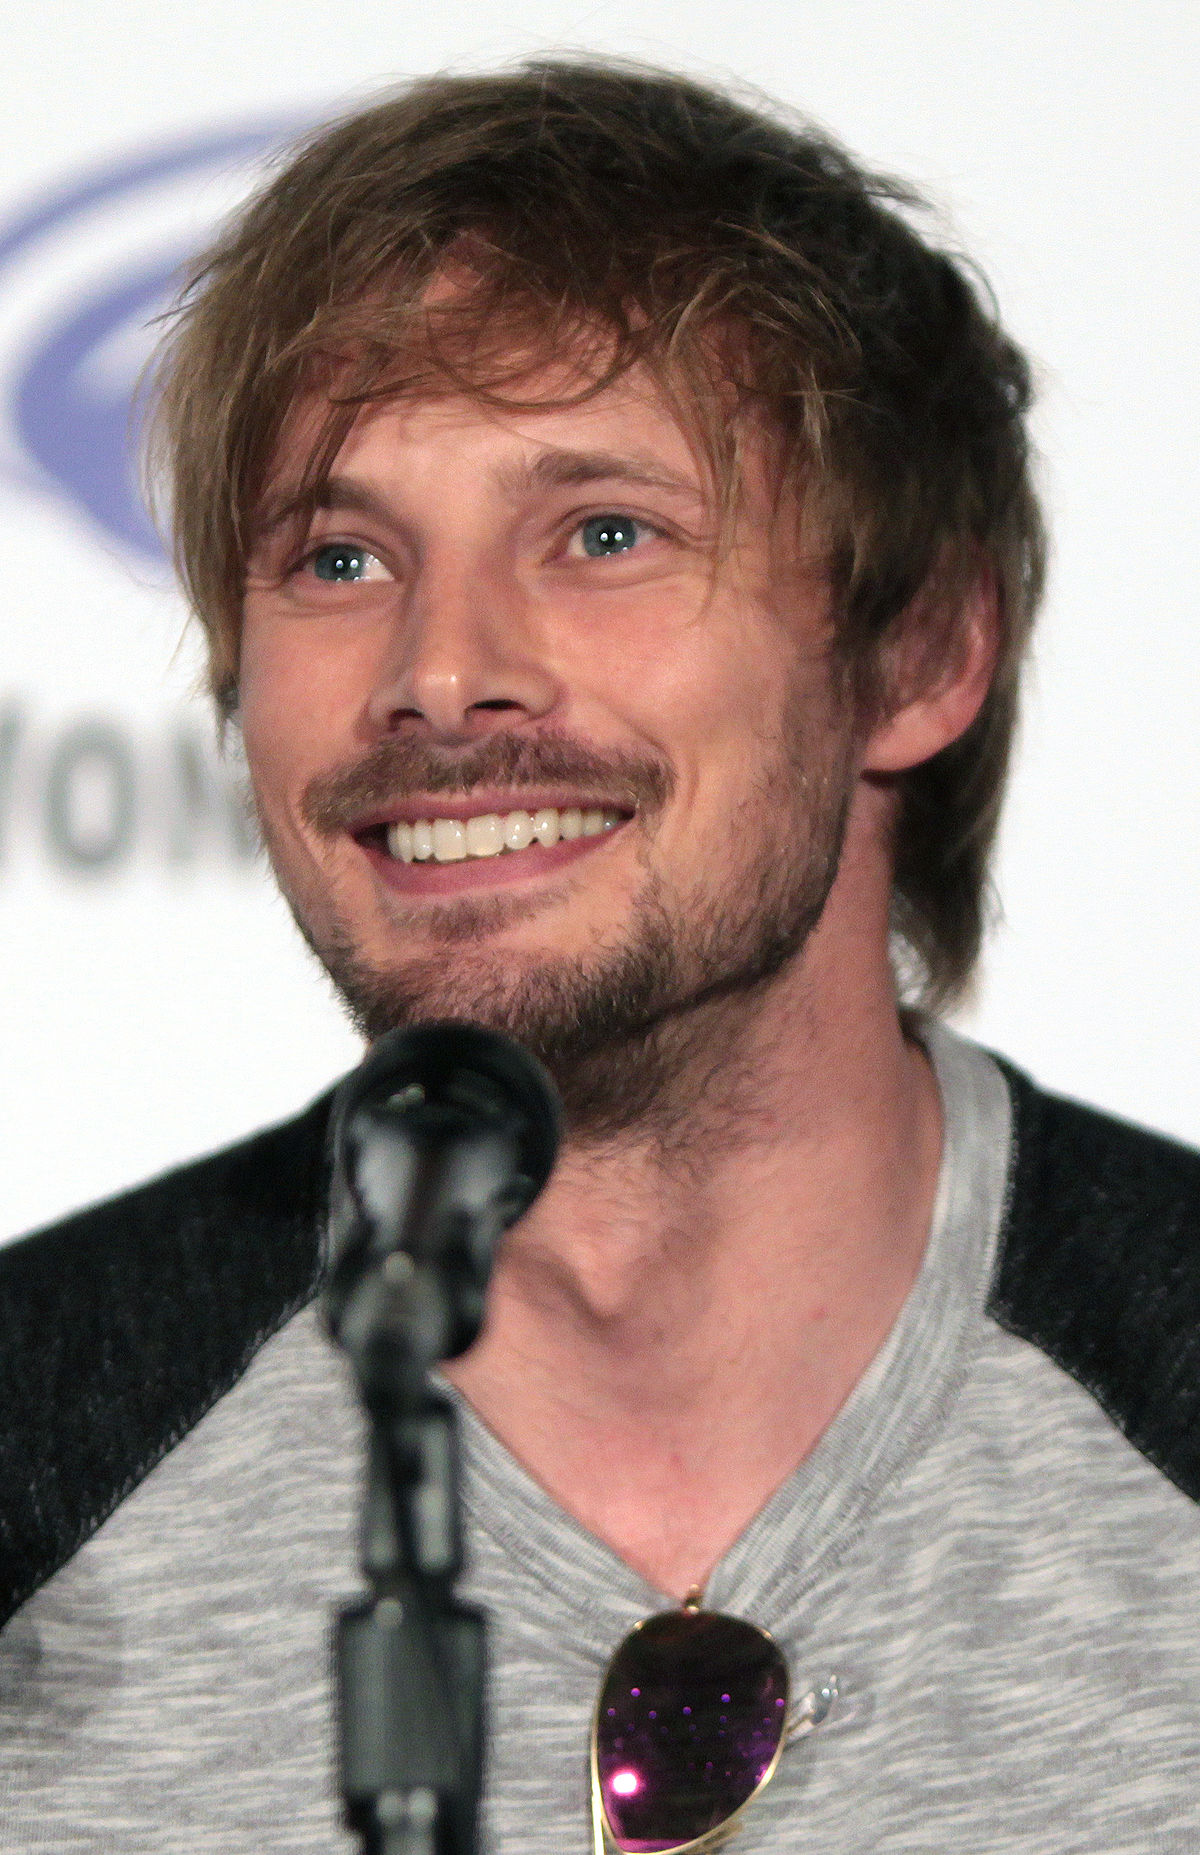 bradley james georgia kingbradley james allan, bradley james gif, bradley james twitter, bradley james allan instagram, bradley james photoshoot, bradley james vk, bradley james 2017, bradley james tumblr gif, bradley james gif hunt, bradley james wiki, bradley james angel coulby, bradley james varga, bradley james photo, bradley james 2013, bradley james hairdressing, bradley james georgia king, bradley james young, bradley james fan site, bradley james facebook, bradley james homeland